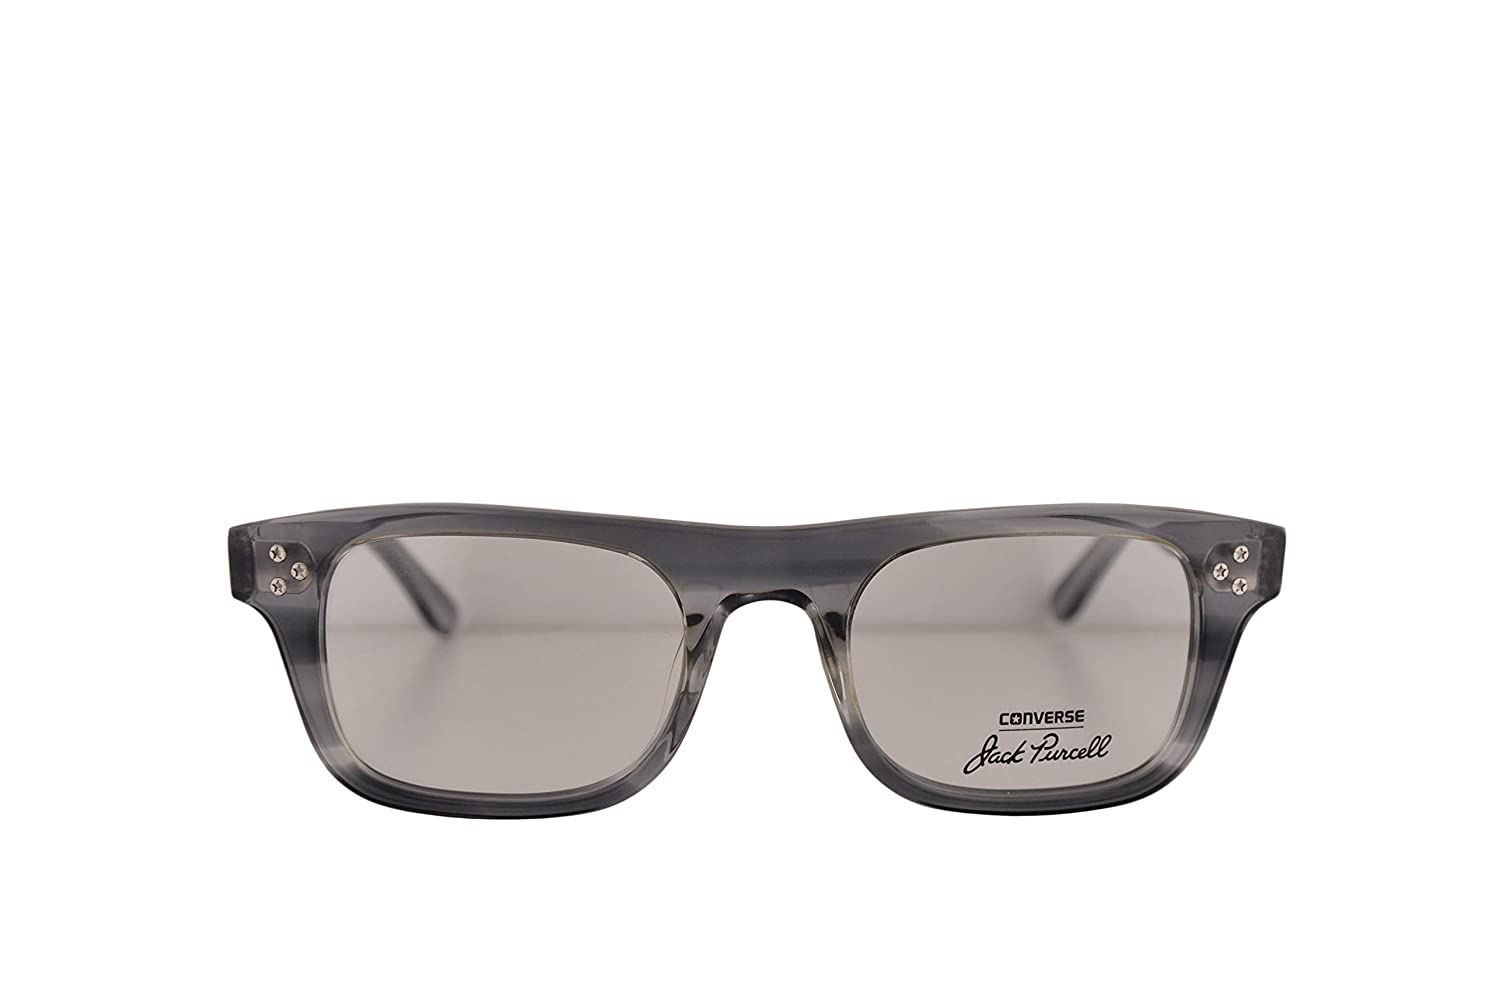 Converse All Star P004 UF Jack Purcell Eyeglasses 50-21-145 Smoke w//Demo Clear Lens P004UF